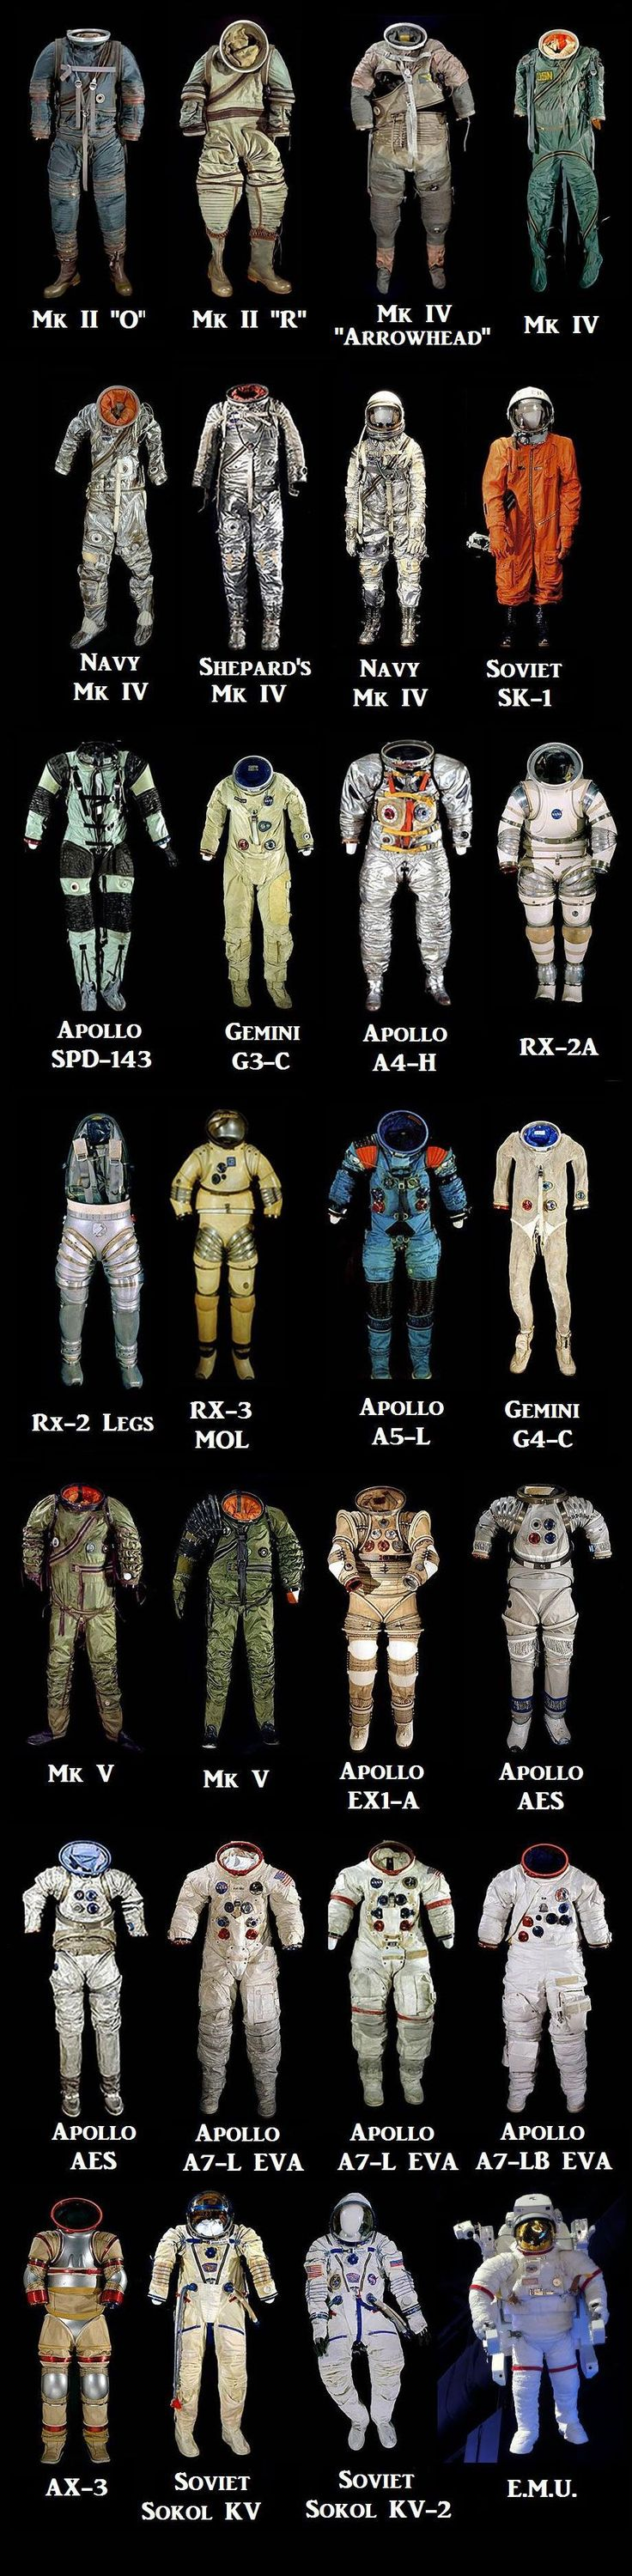 i like the navy mk iv suit (the one directly left of the orange one) the best. definitely the vibe i'm going for